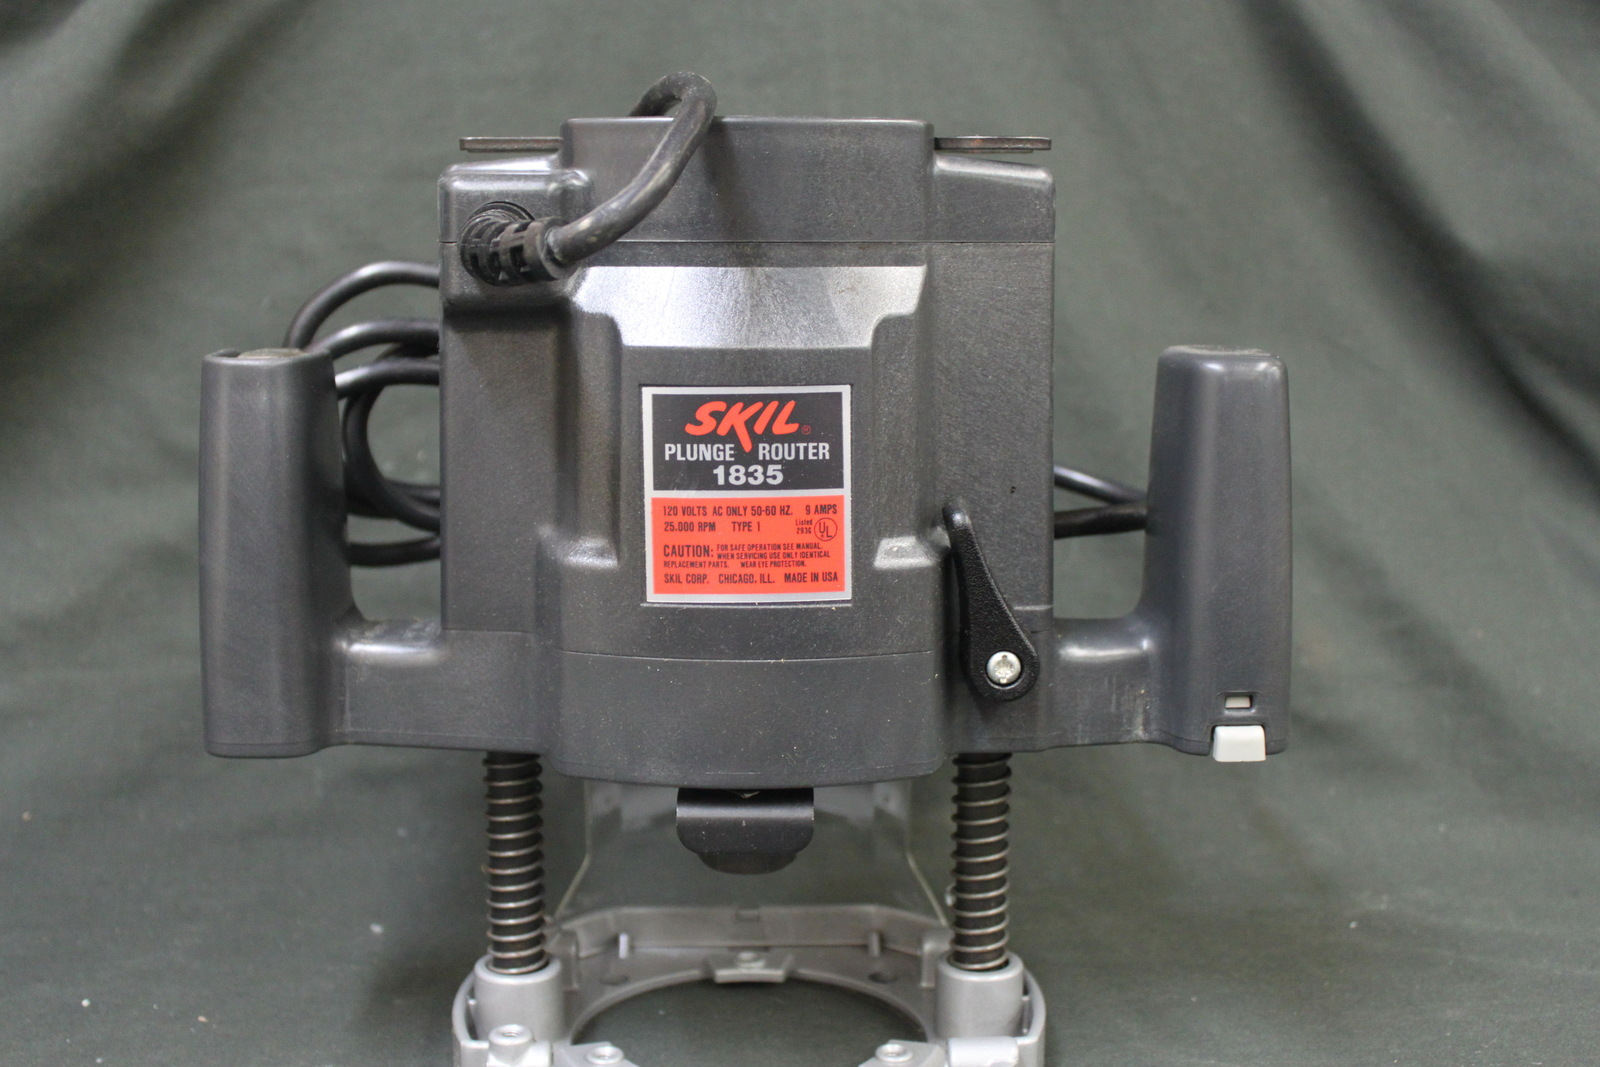 Need a manual for a skil model 1835 type 1 plunge router router.